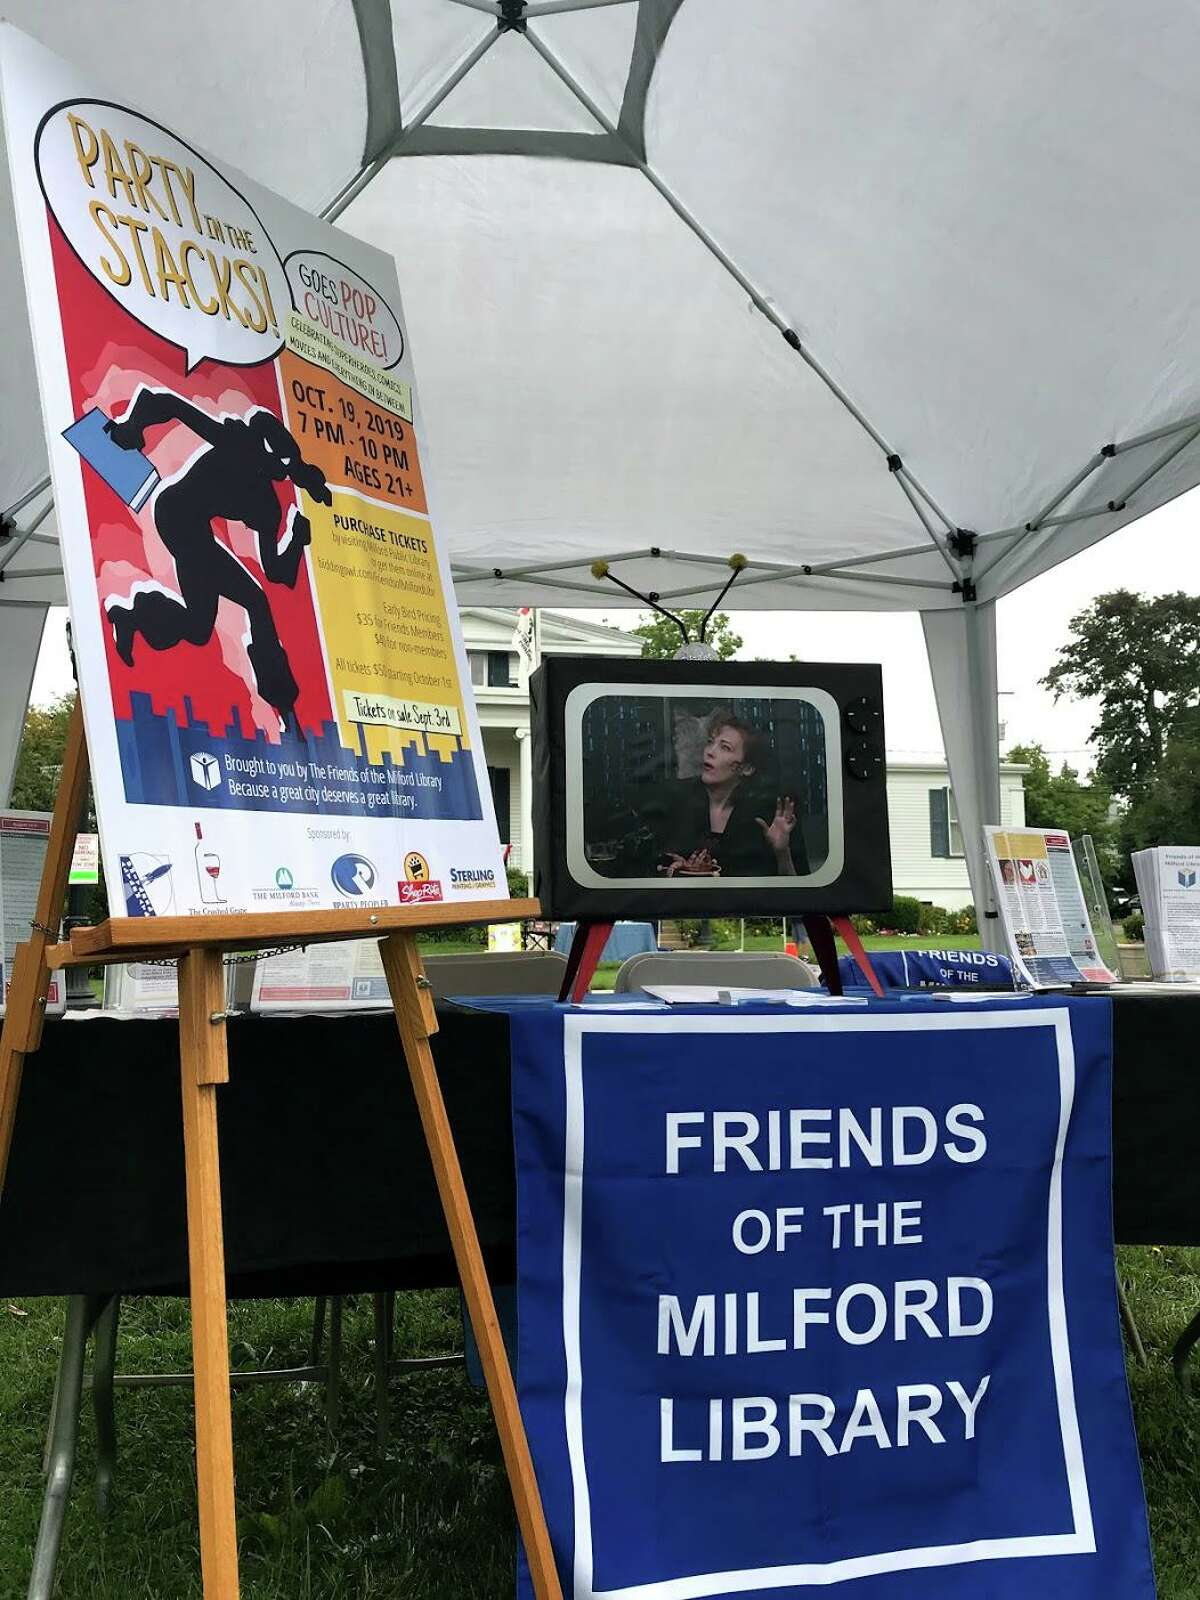 Friends of the Milford Library will host their fourth annual Party in the Stacks fund-raiser on Oct. 19, at the library.